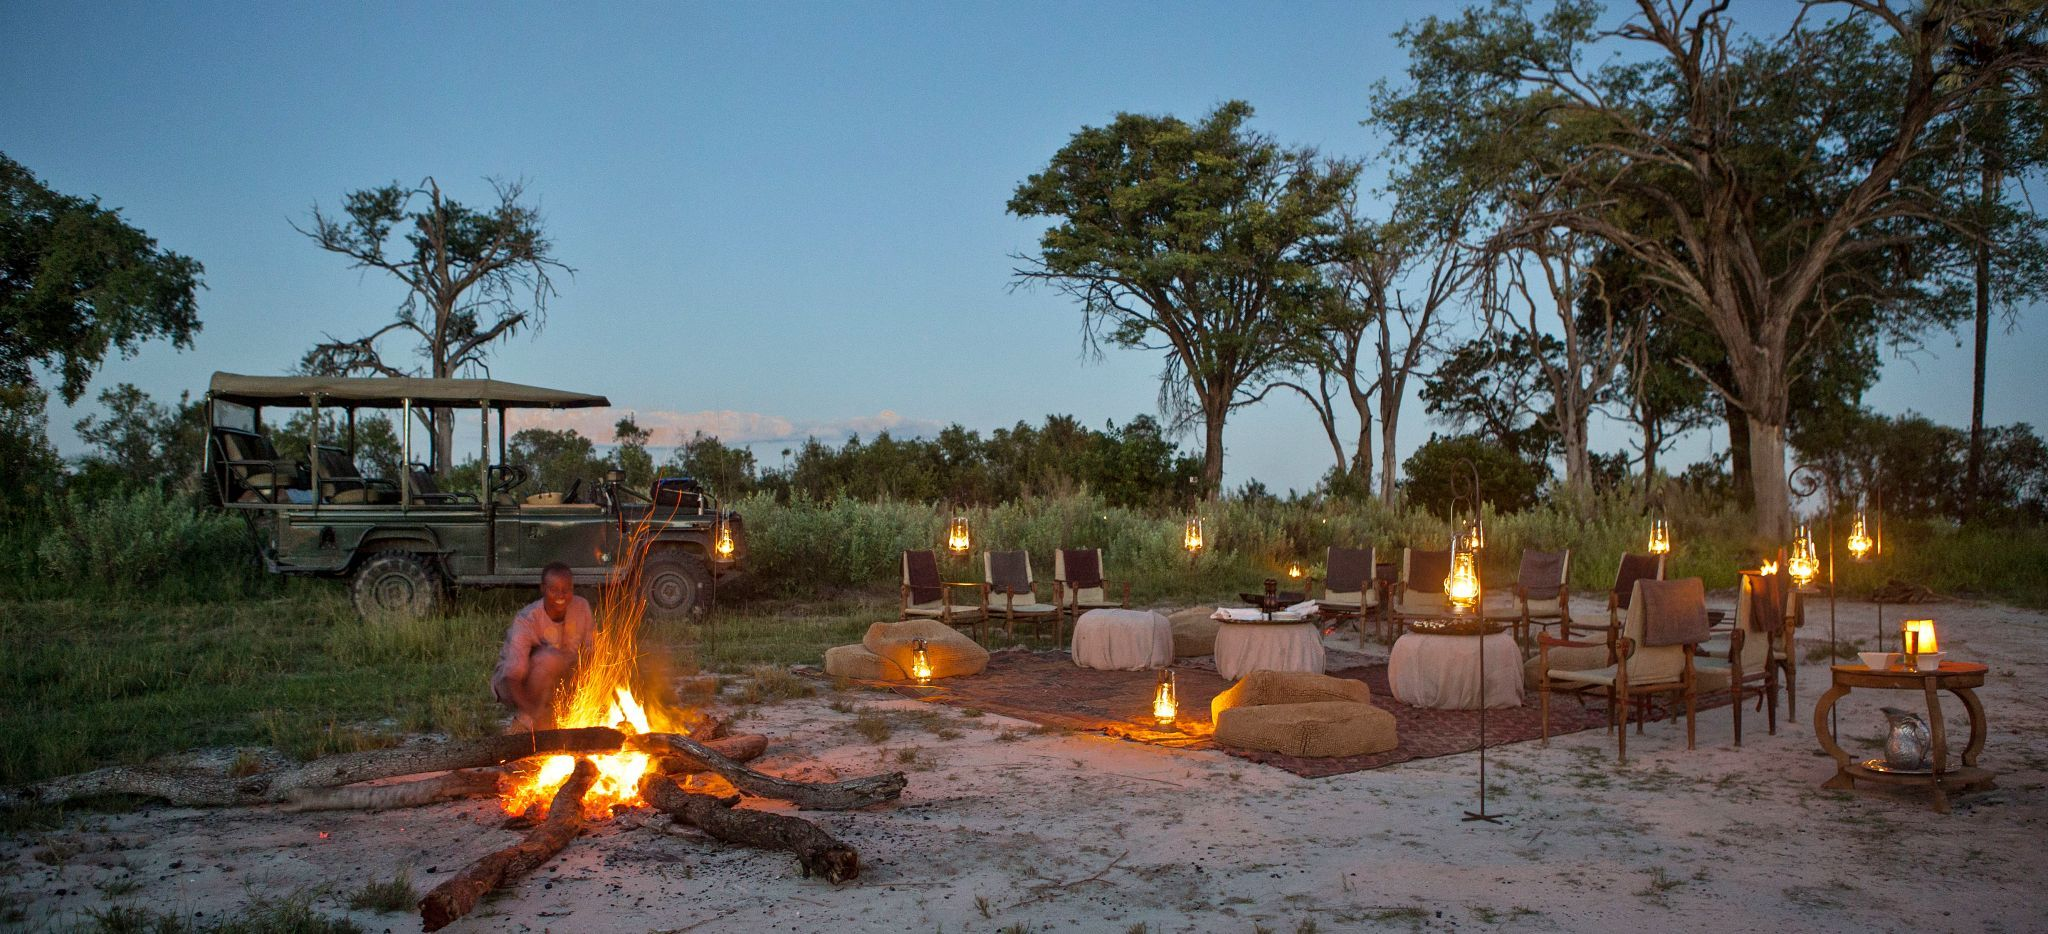 A guide is fanning a fire in the Okavango Delta, another is preparing a Dinner in the Wilderness.